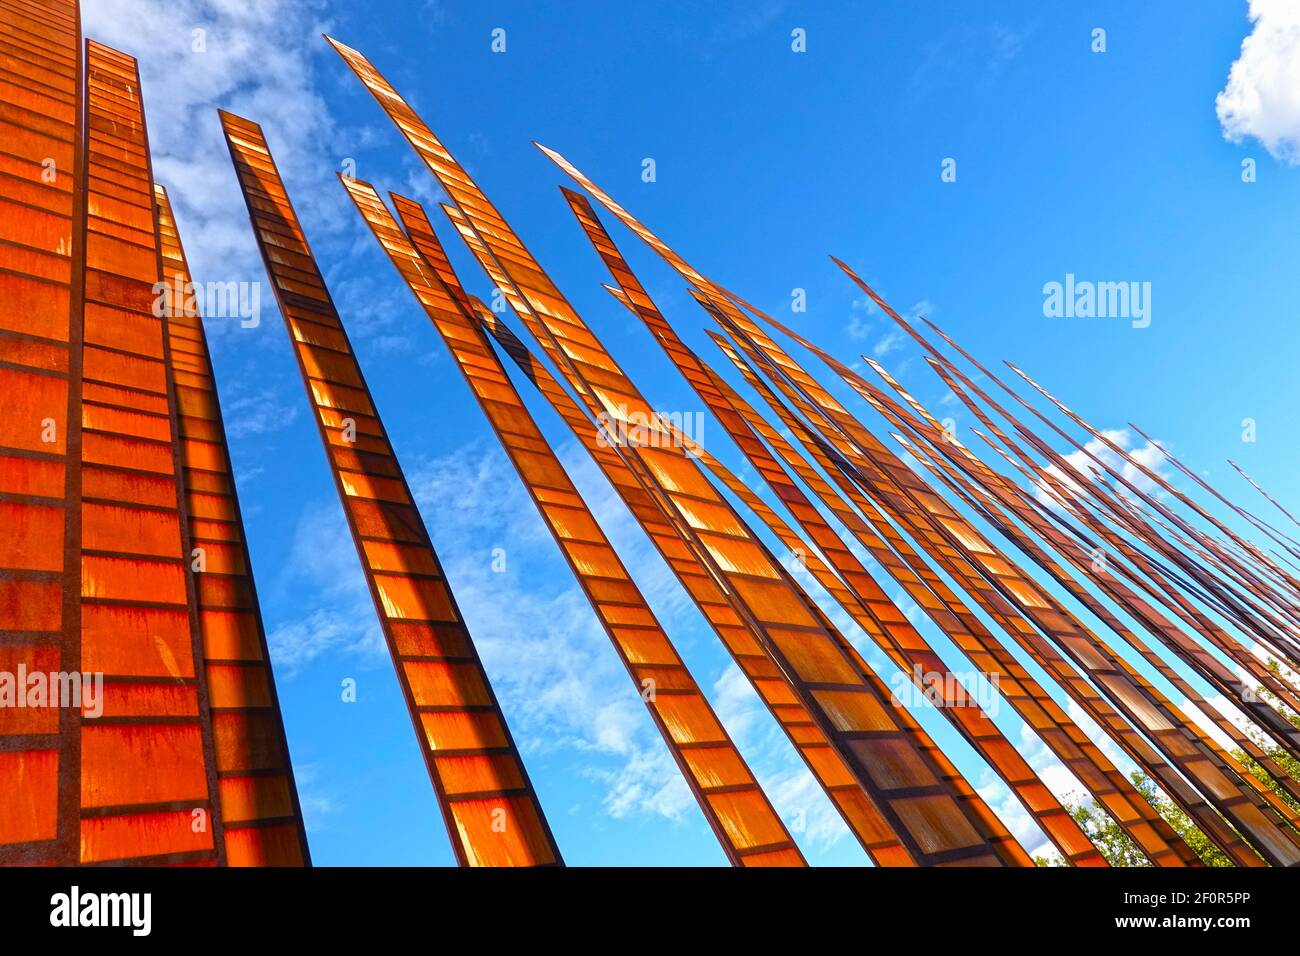 Seattle, Washington, USA, October 19, 2019: Sculpture Grass blades by John Fleming, exhibited as public work of contemporary art at the Seattle Center Stock Photo